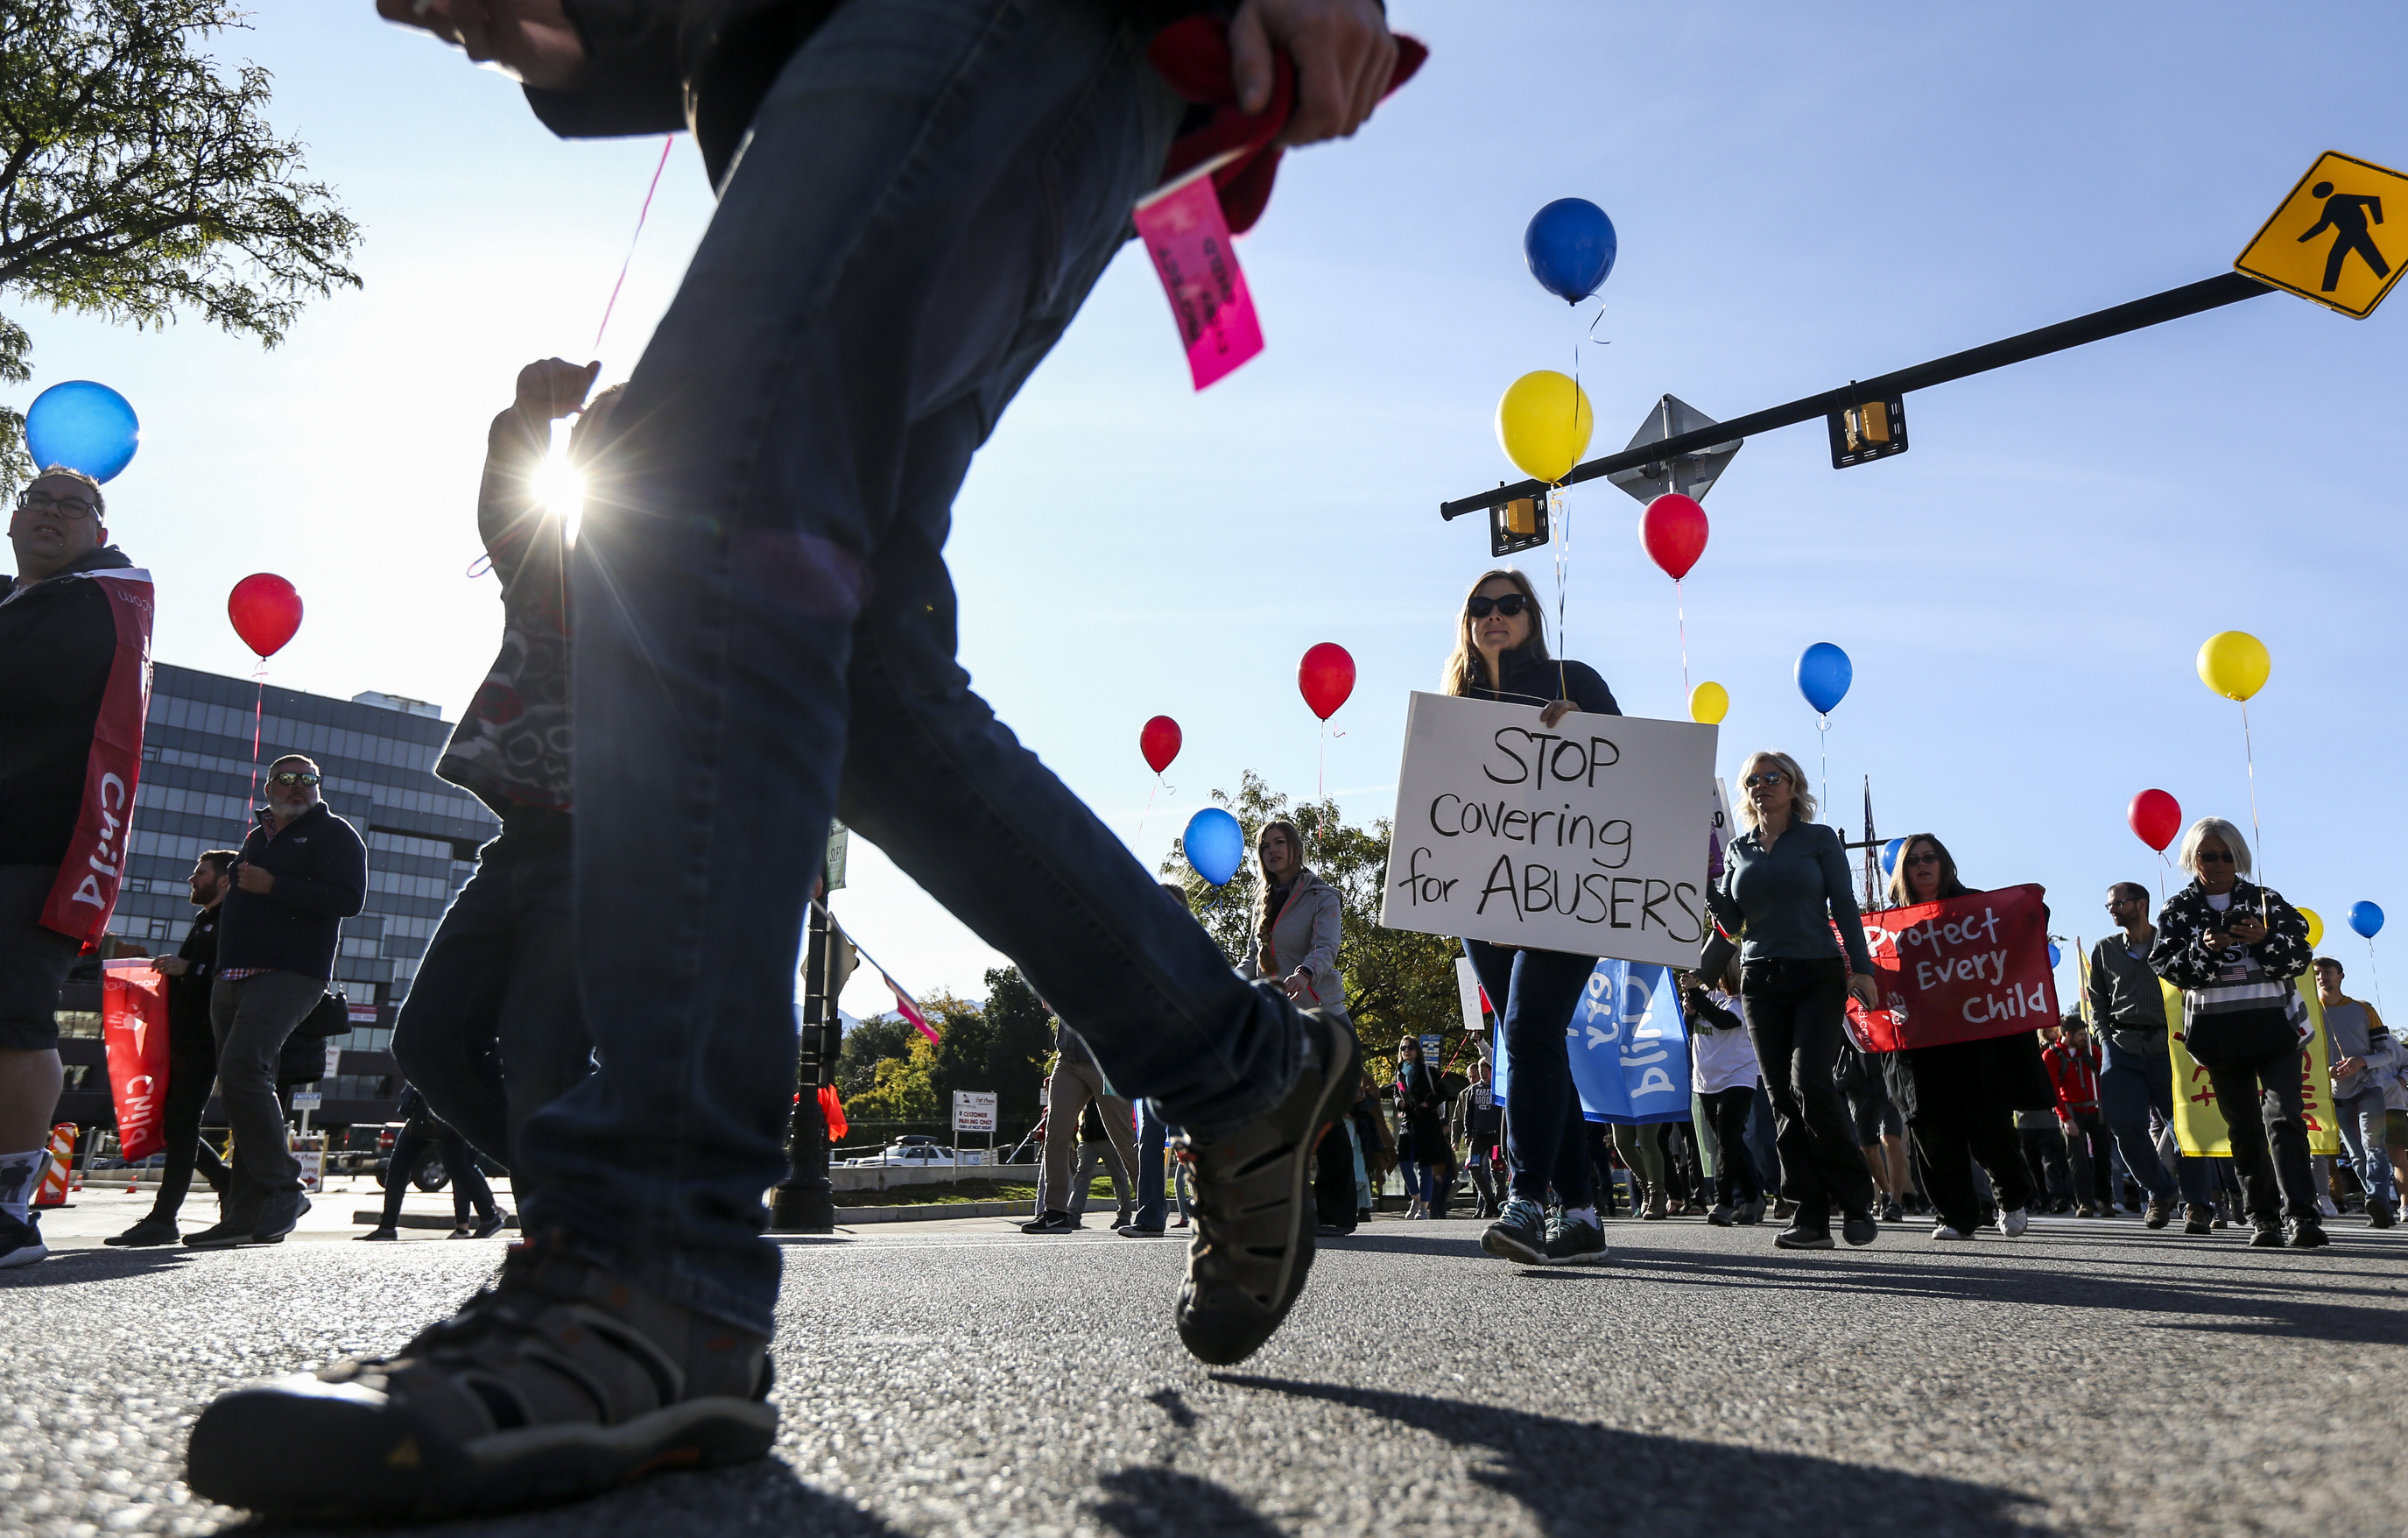 Hundreds march north along State Street from the Salt Lake City-County Building to the state Capitol during the March to End Child Abuse, organized by Protect Every Child, in Salt Lake City on Saturday, Oct. 5, 2019. More than 500 people turned out for the event.